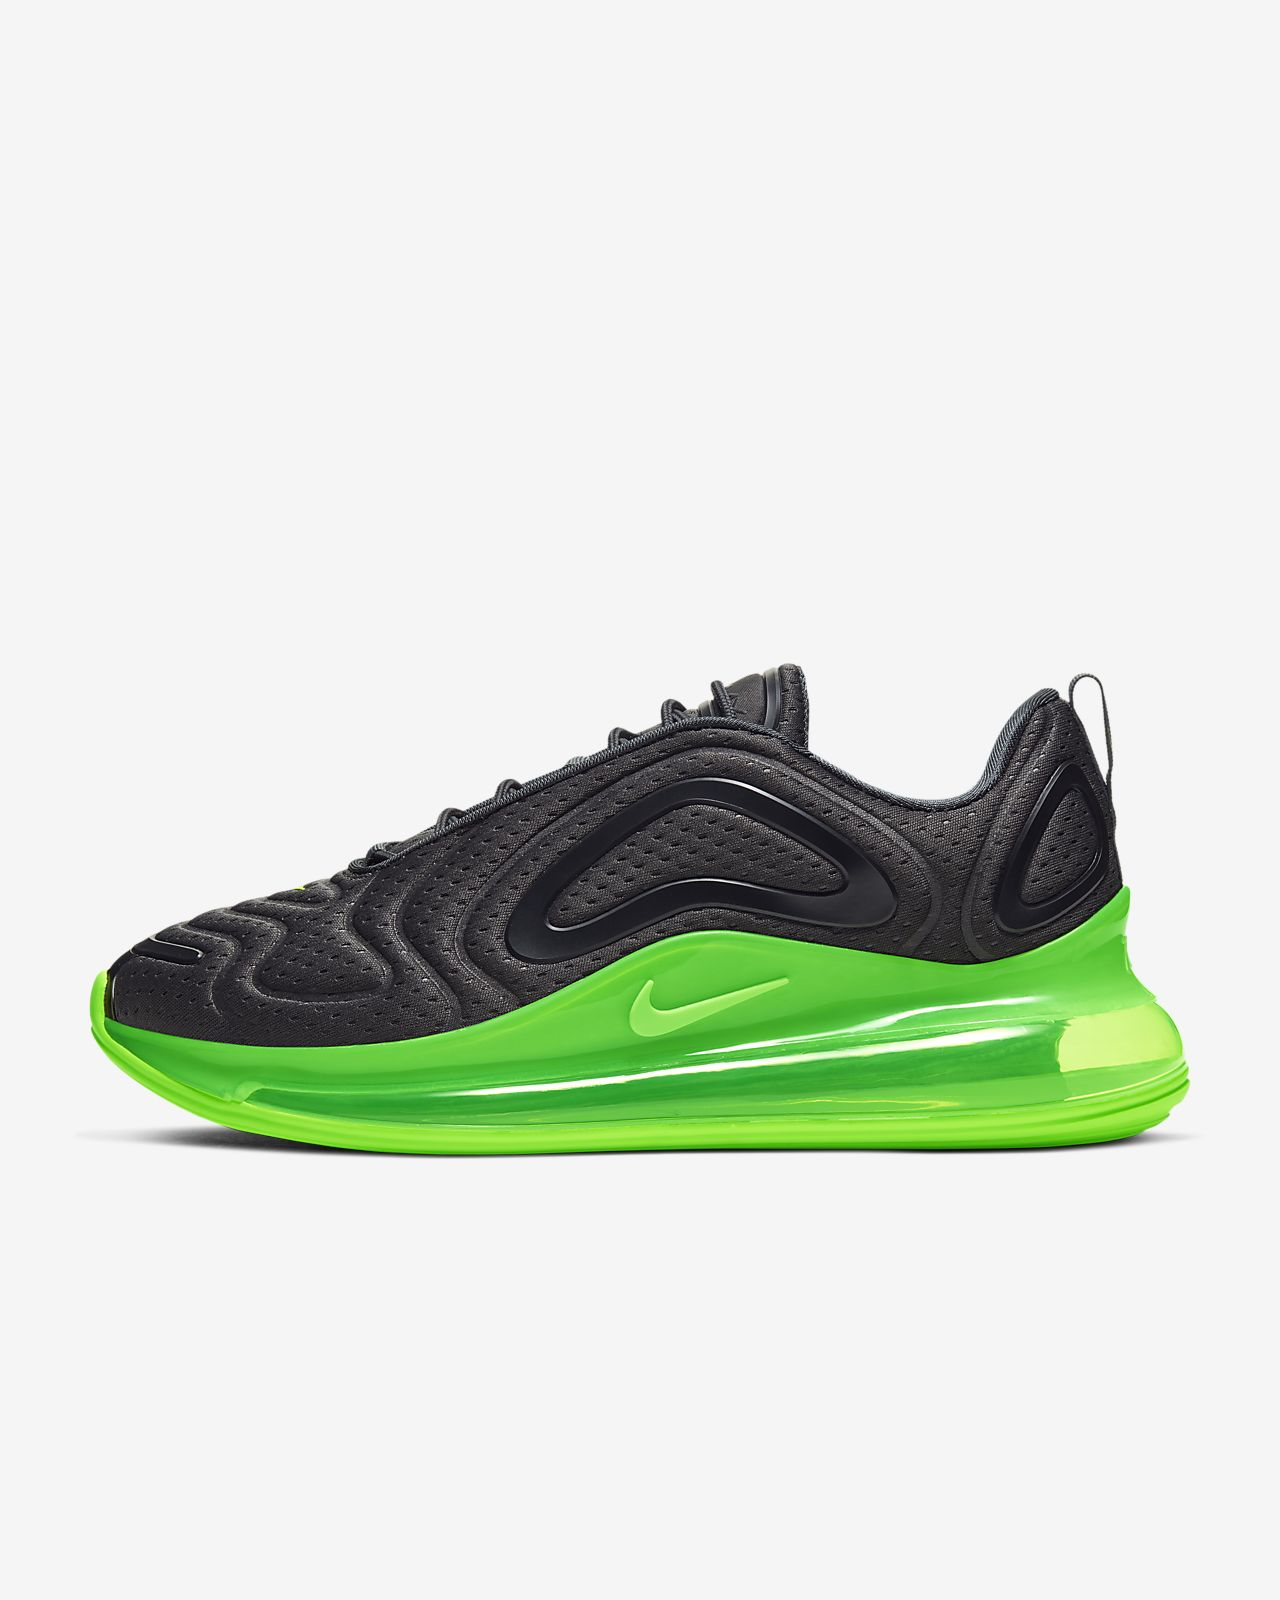 Nike Air Max shoes that light up when you walk!!!! WHAT I